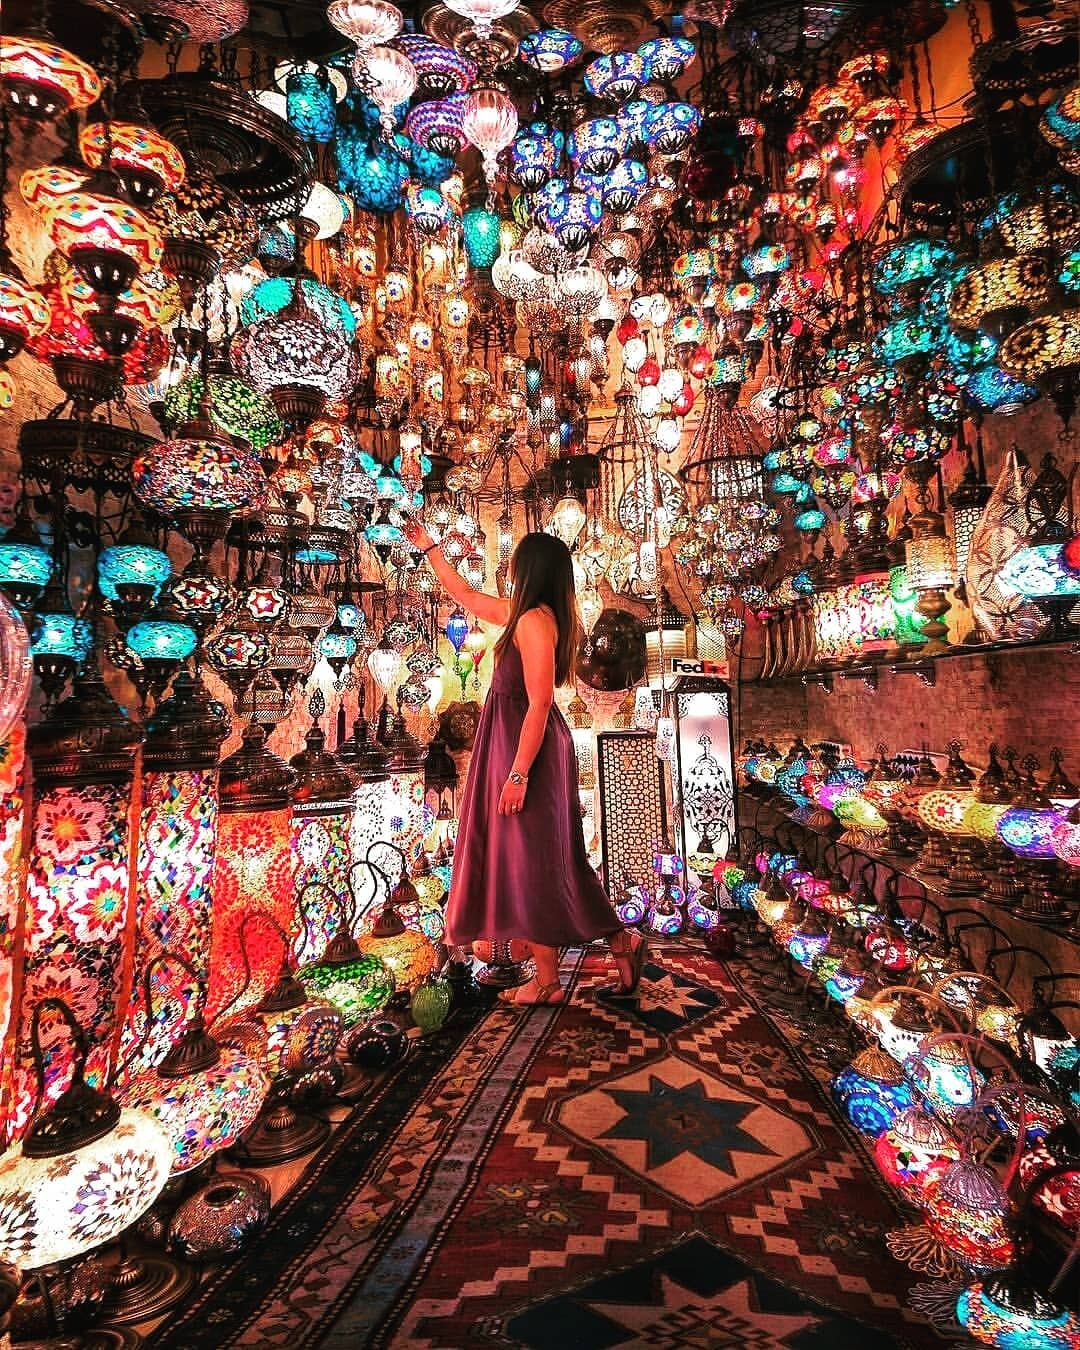 21 Most Instagrammable Places in Istanbul: Photo Spots Not to Miss! #favoriteplaces